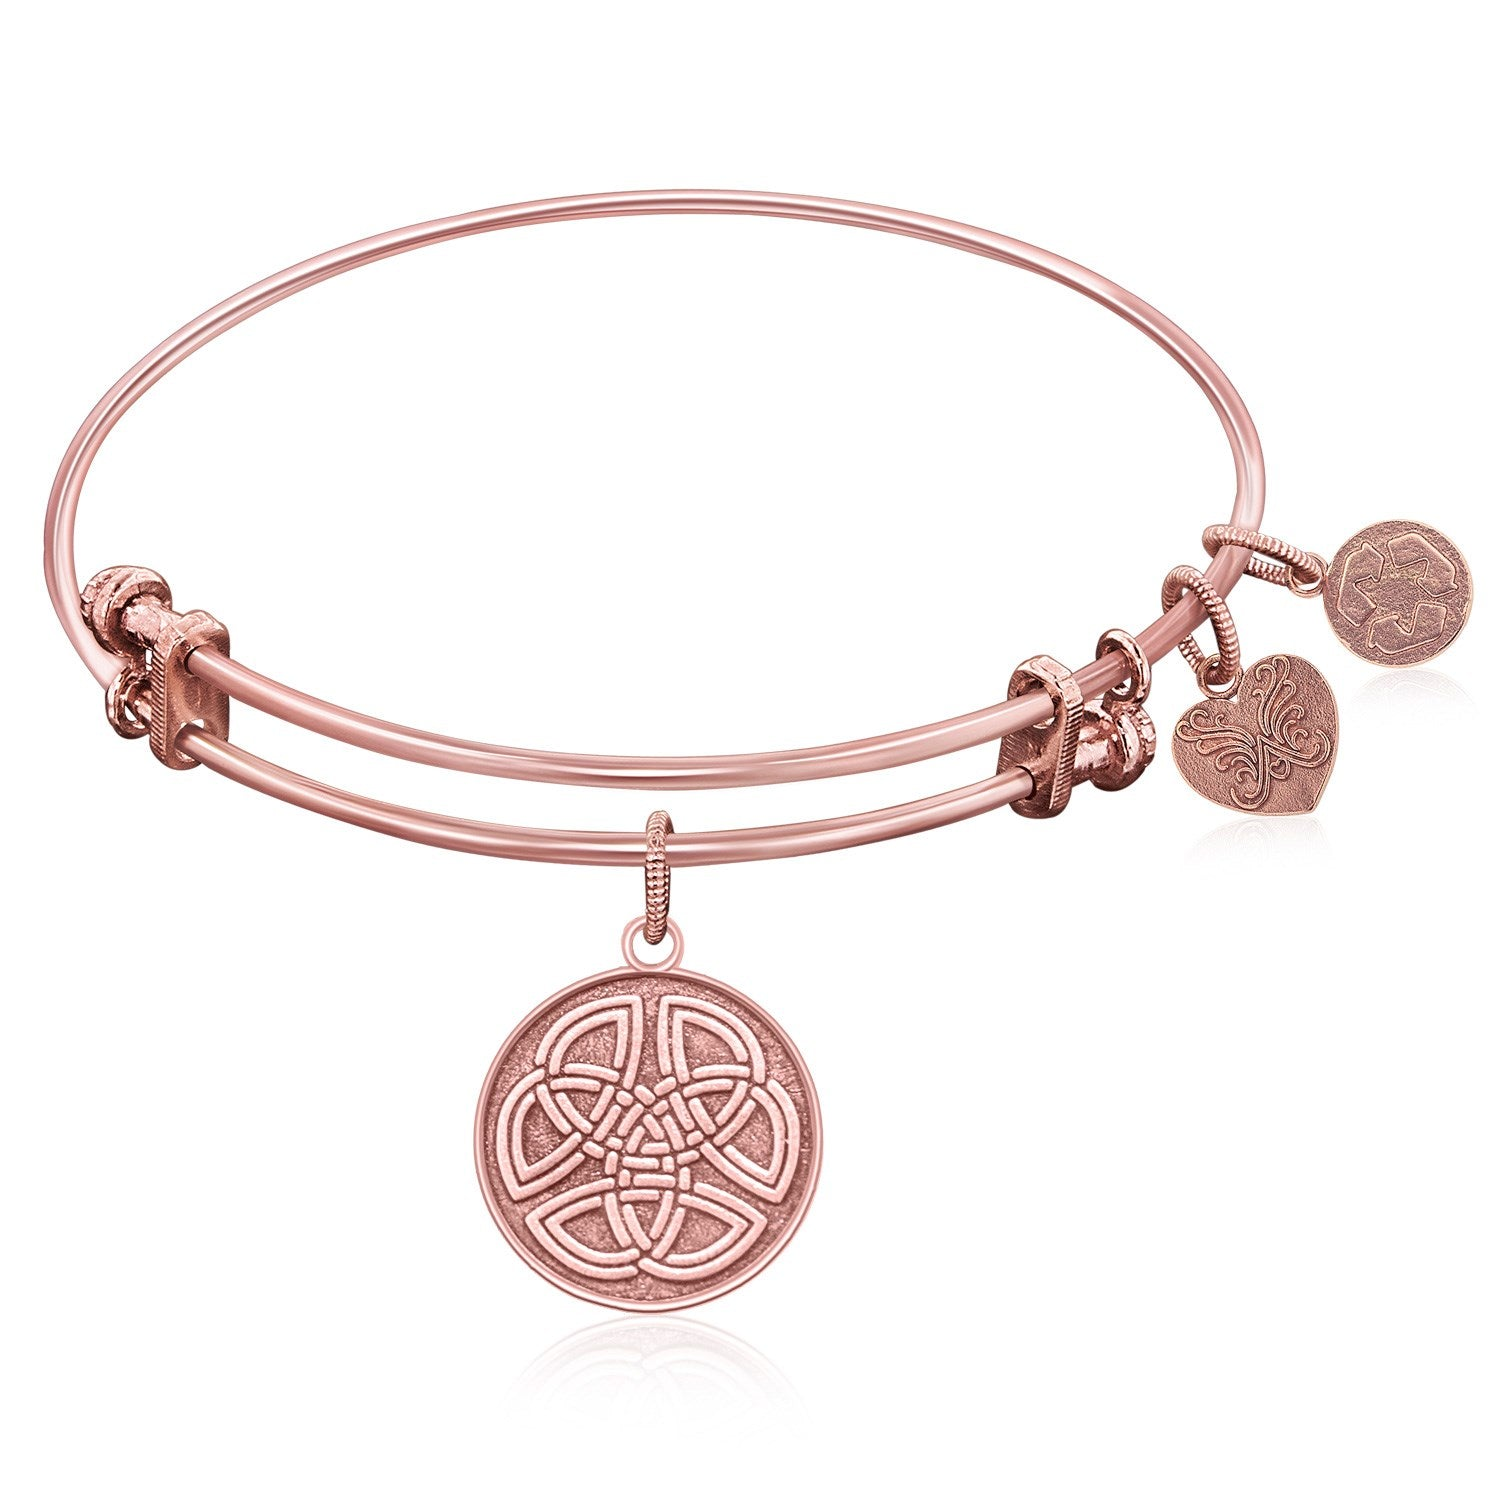 Luxury London Style Original Expandable Bangle in Pink Tone Brass with Celtic Round Completeness Self Symbol